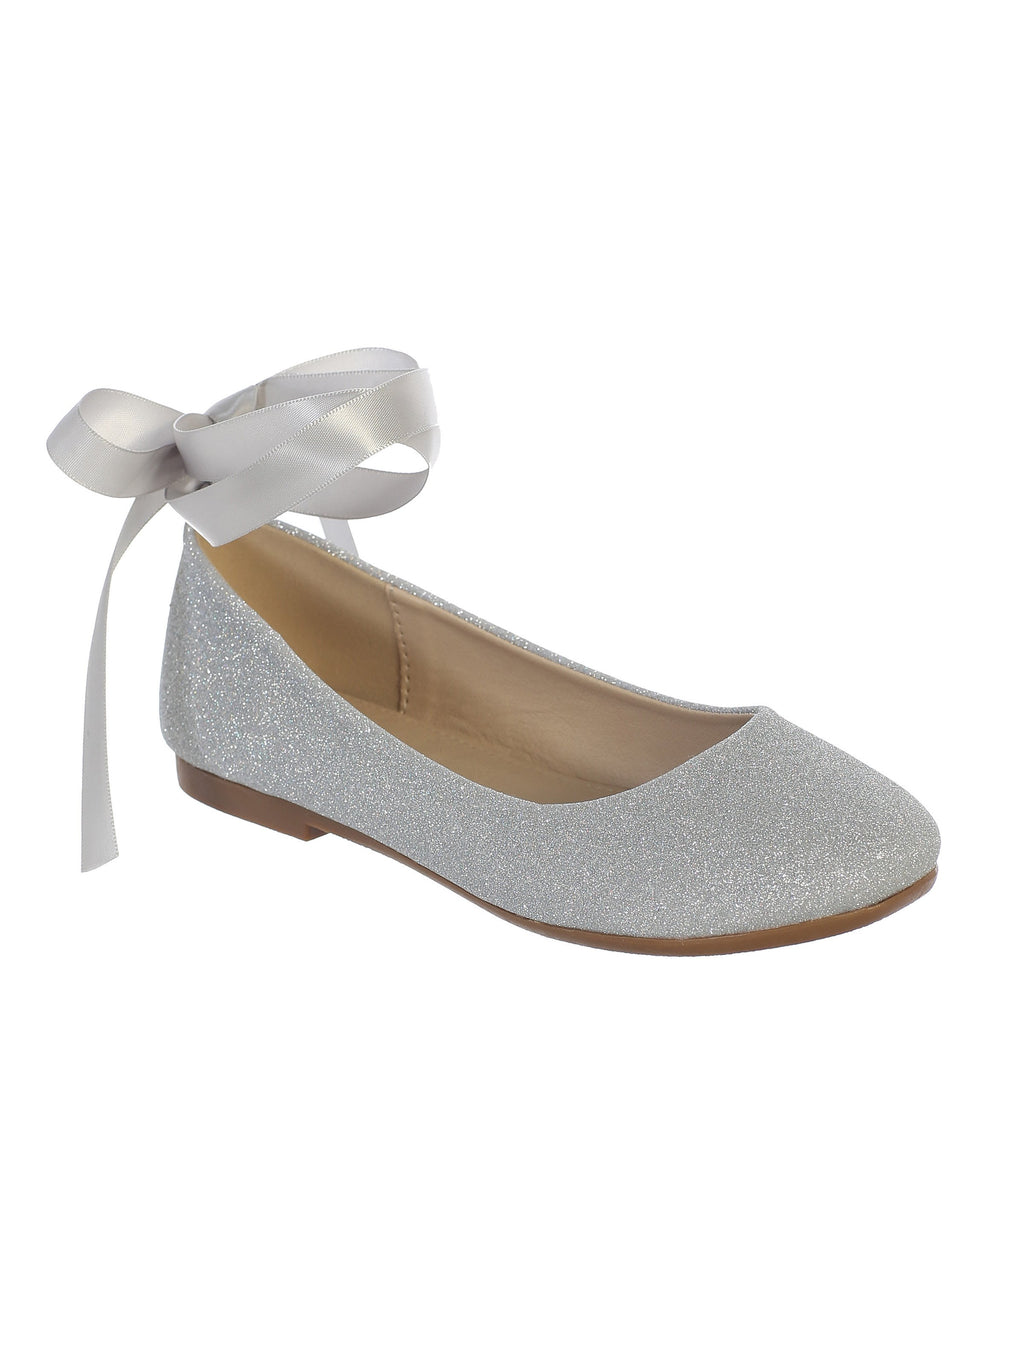 Silver Glitter Ballerina Shoes with a Satin Ribbon Ankle Ties